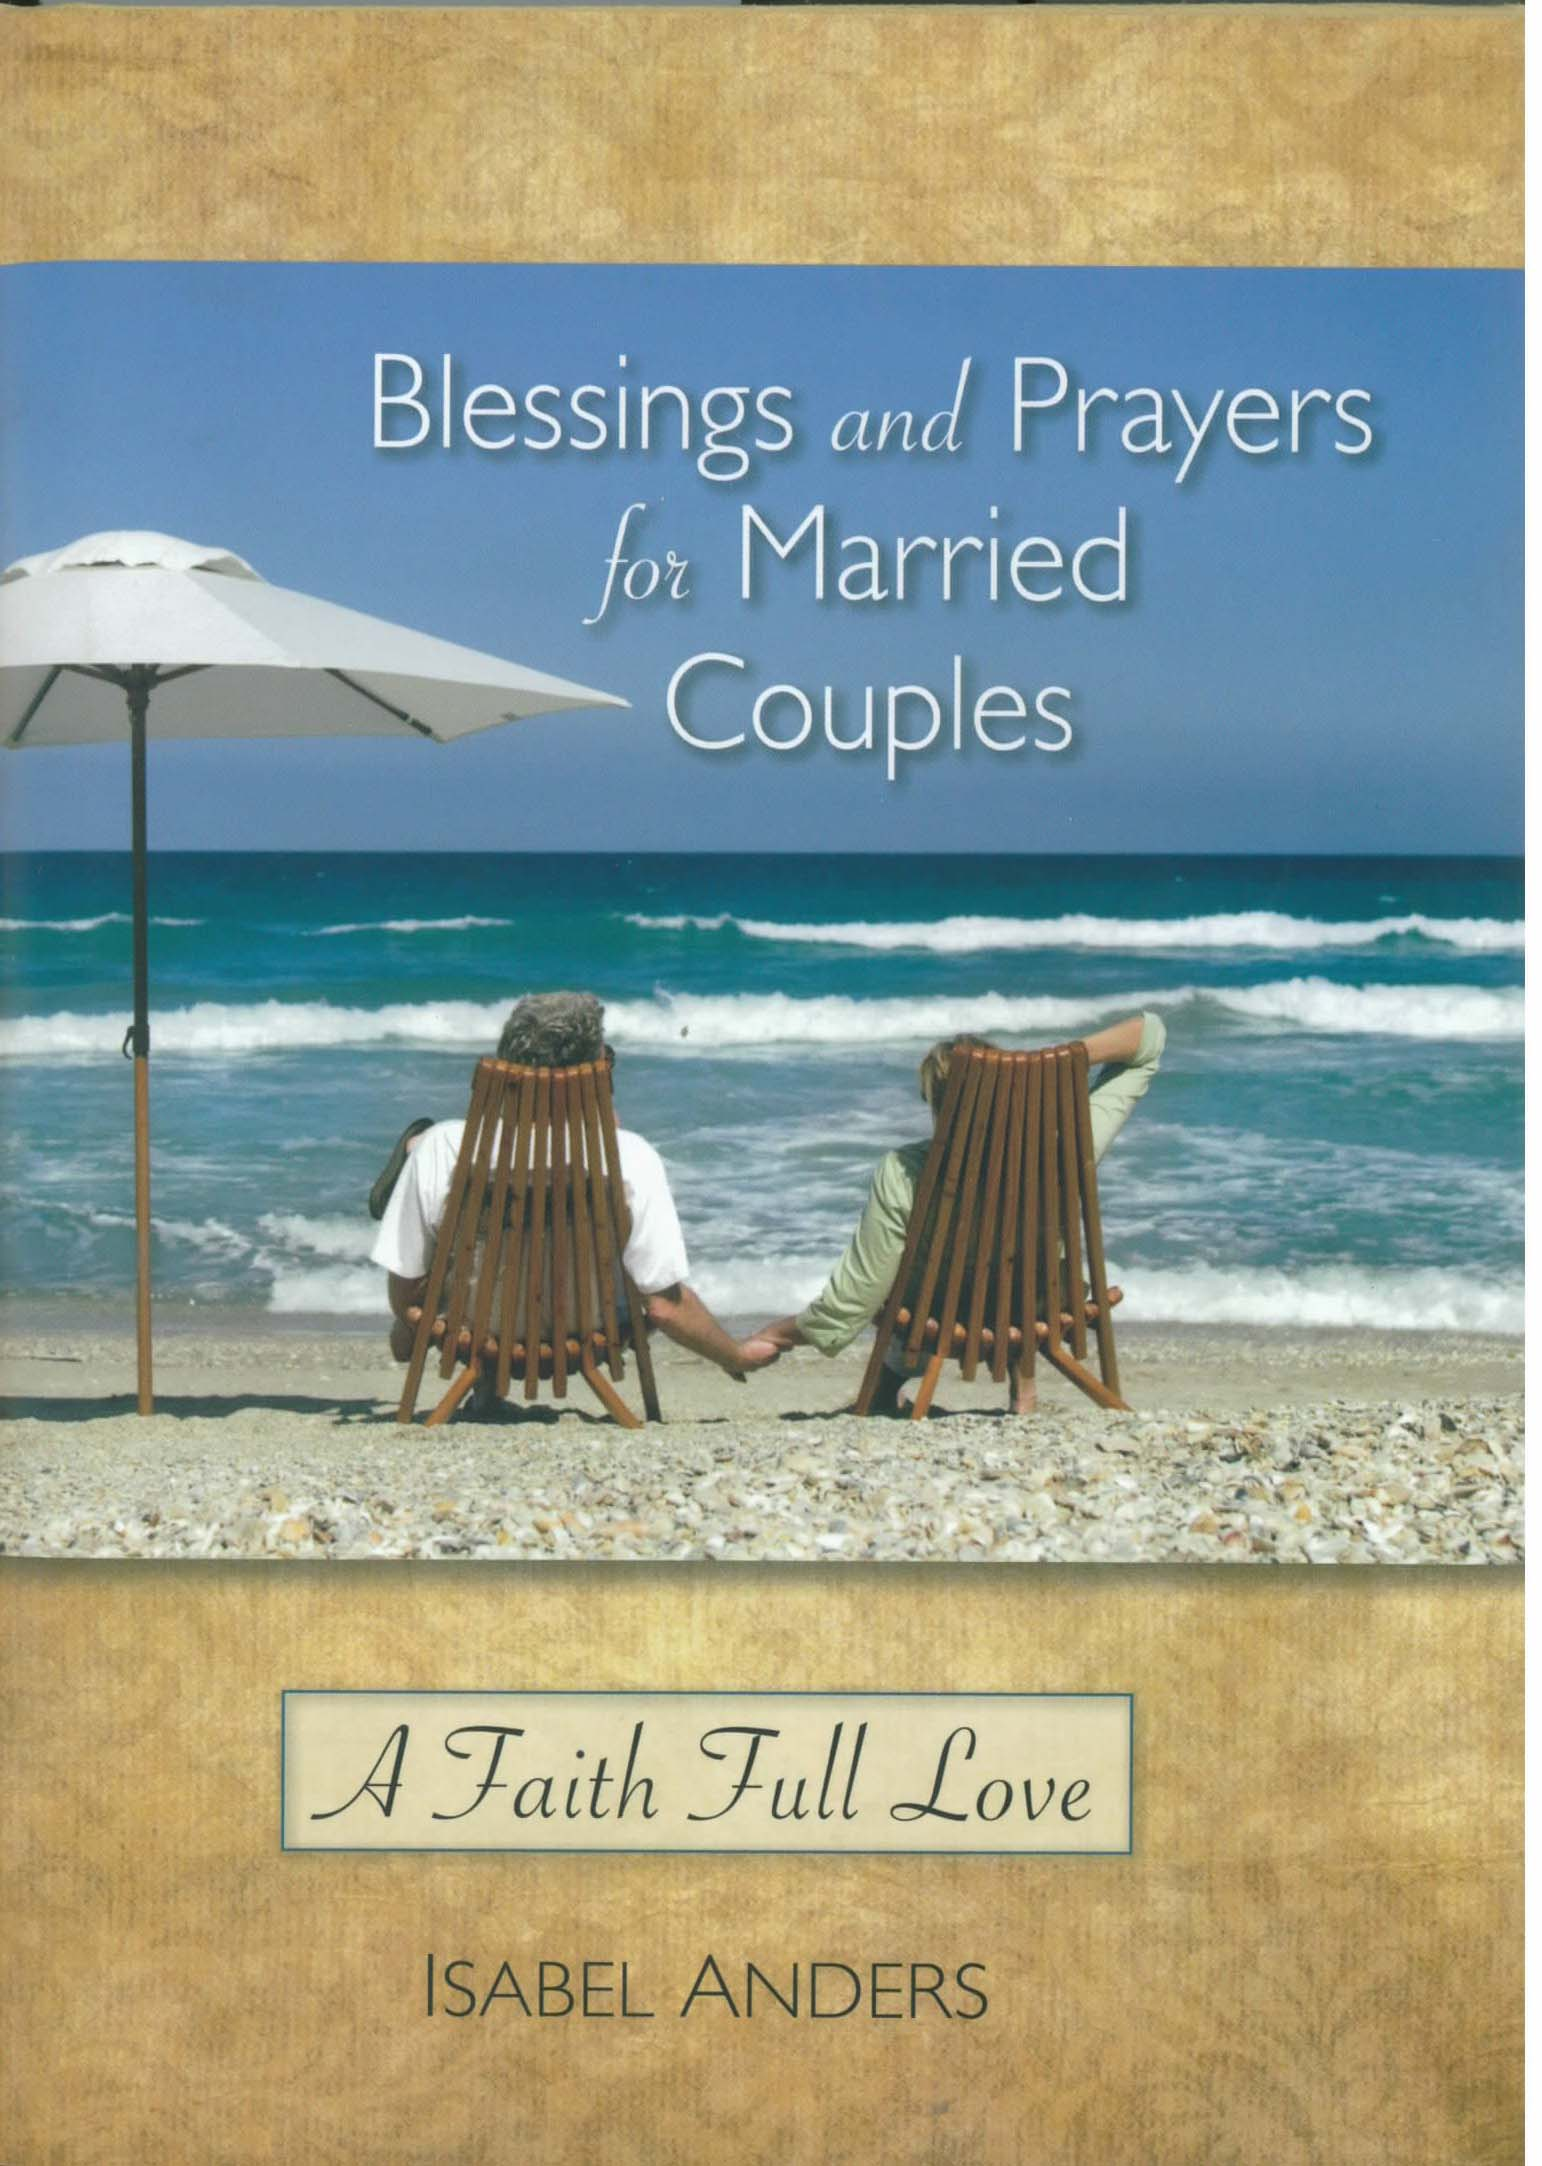 Blessings & Prayers for Married Couples by Isabel Anders 108-9780764819339